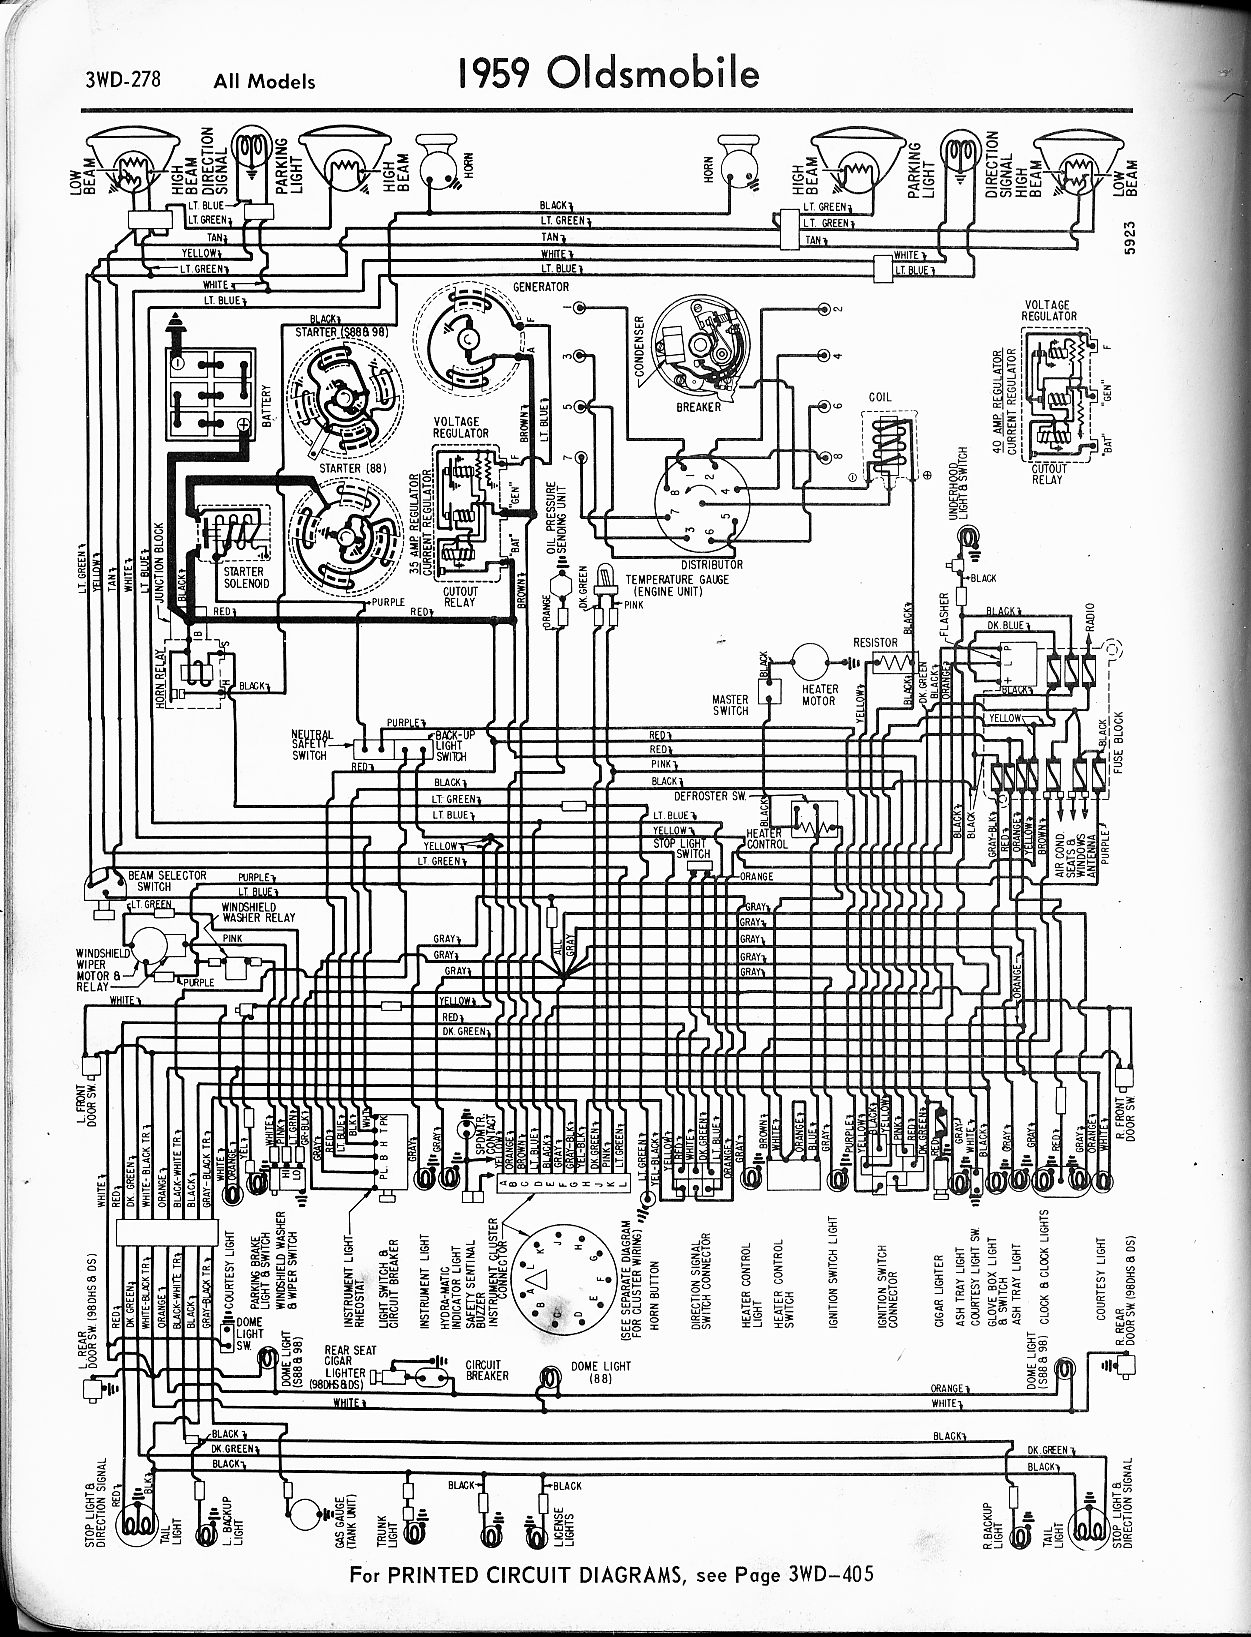 Wiring Diagram For 1959 Oldsmobile All Models - Wiring Diagram For on old hood, old time warner box, old spring box, old front door, breaker box, old caliper, old tnt box, old hbo box, old gear box, old generator, old glass fuses, old wiring box, old console, old cable box, electrical panel box, old horn, old control box, old red box, old gravity box, old battery box,